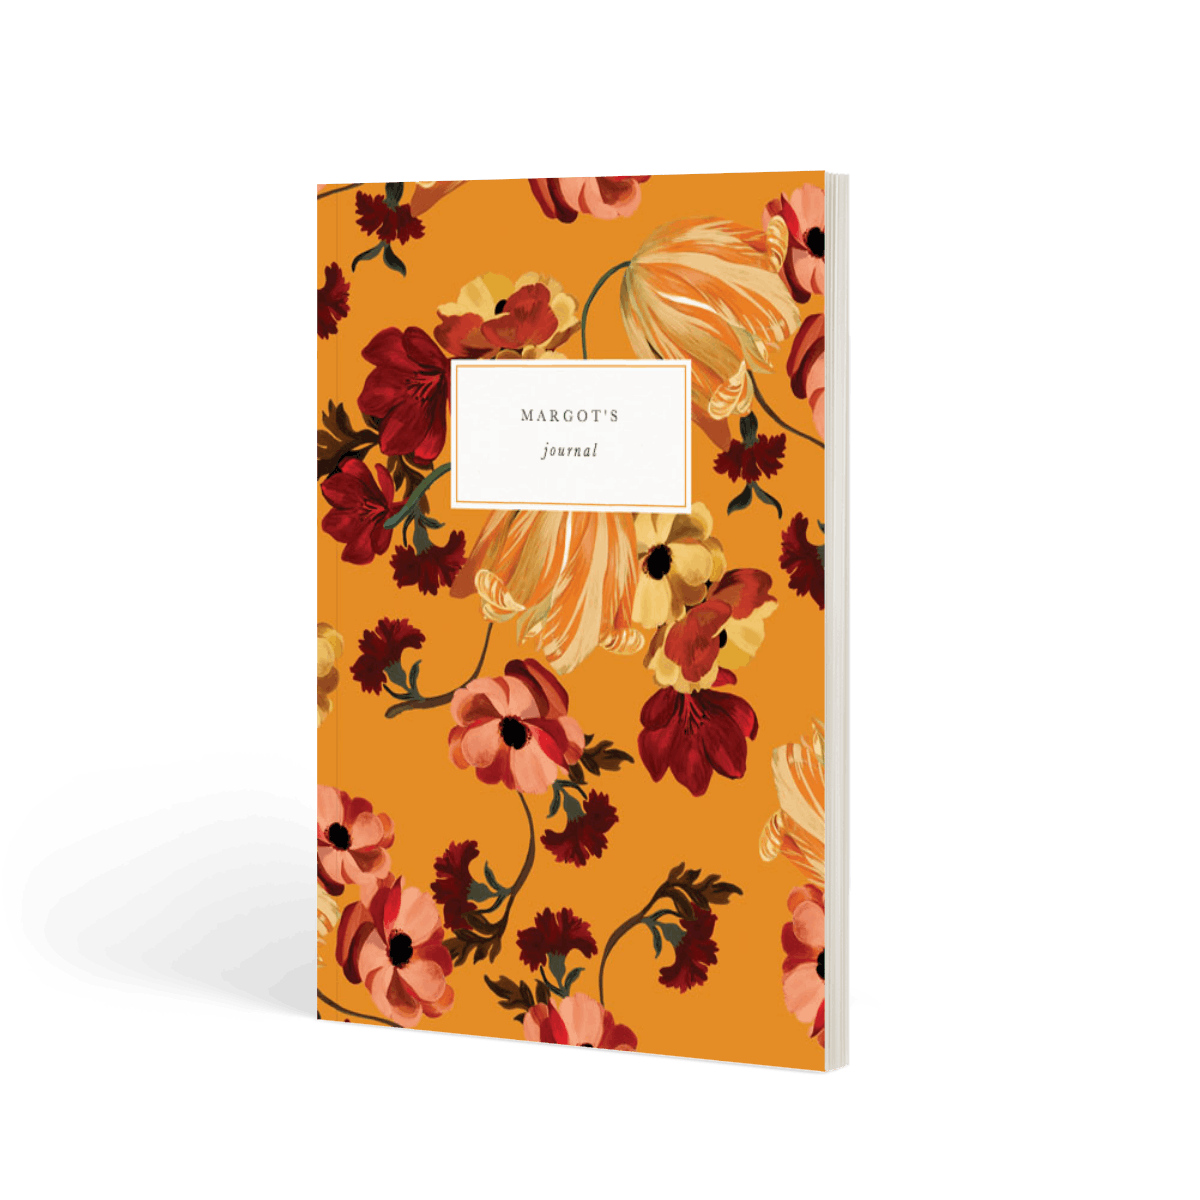 Https%3a%2f%2fwww.papier.com%2fproduct image%2f55486%2f6%2fautumn bloom 13329 front 1570268799.png?ixlib=rb 1.1